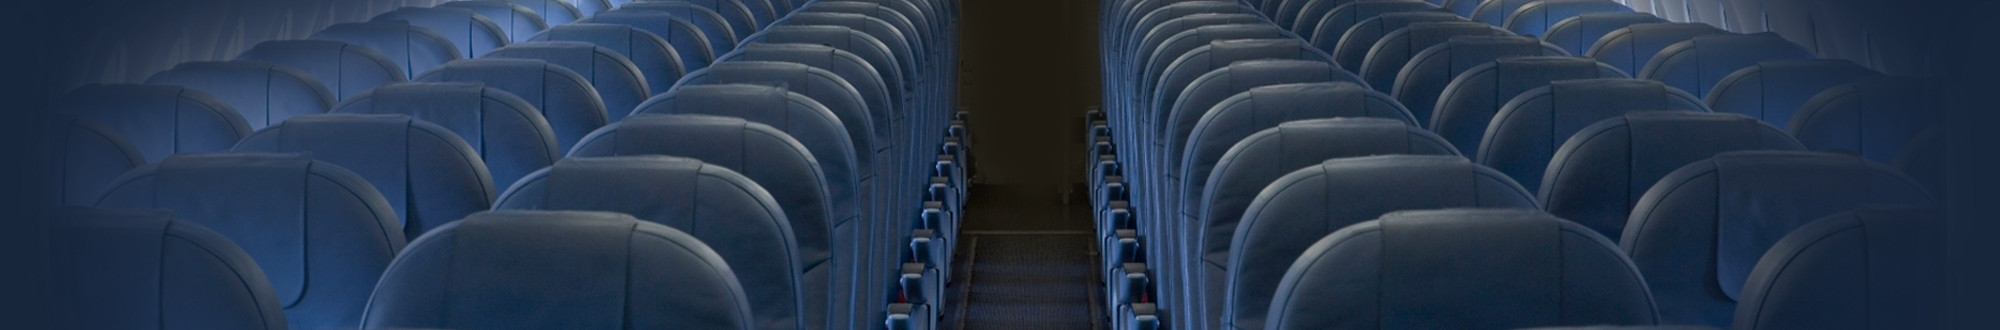 Seats in the interior of an airplane